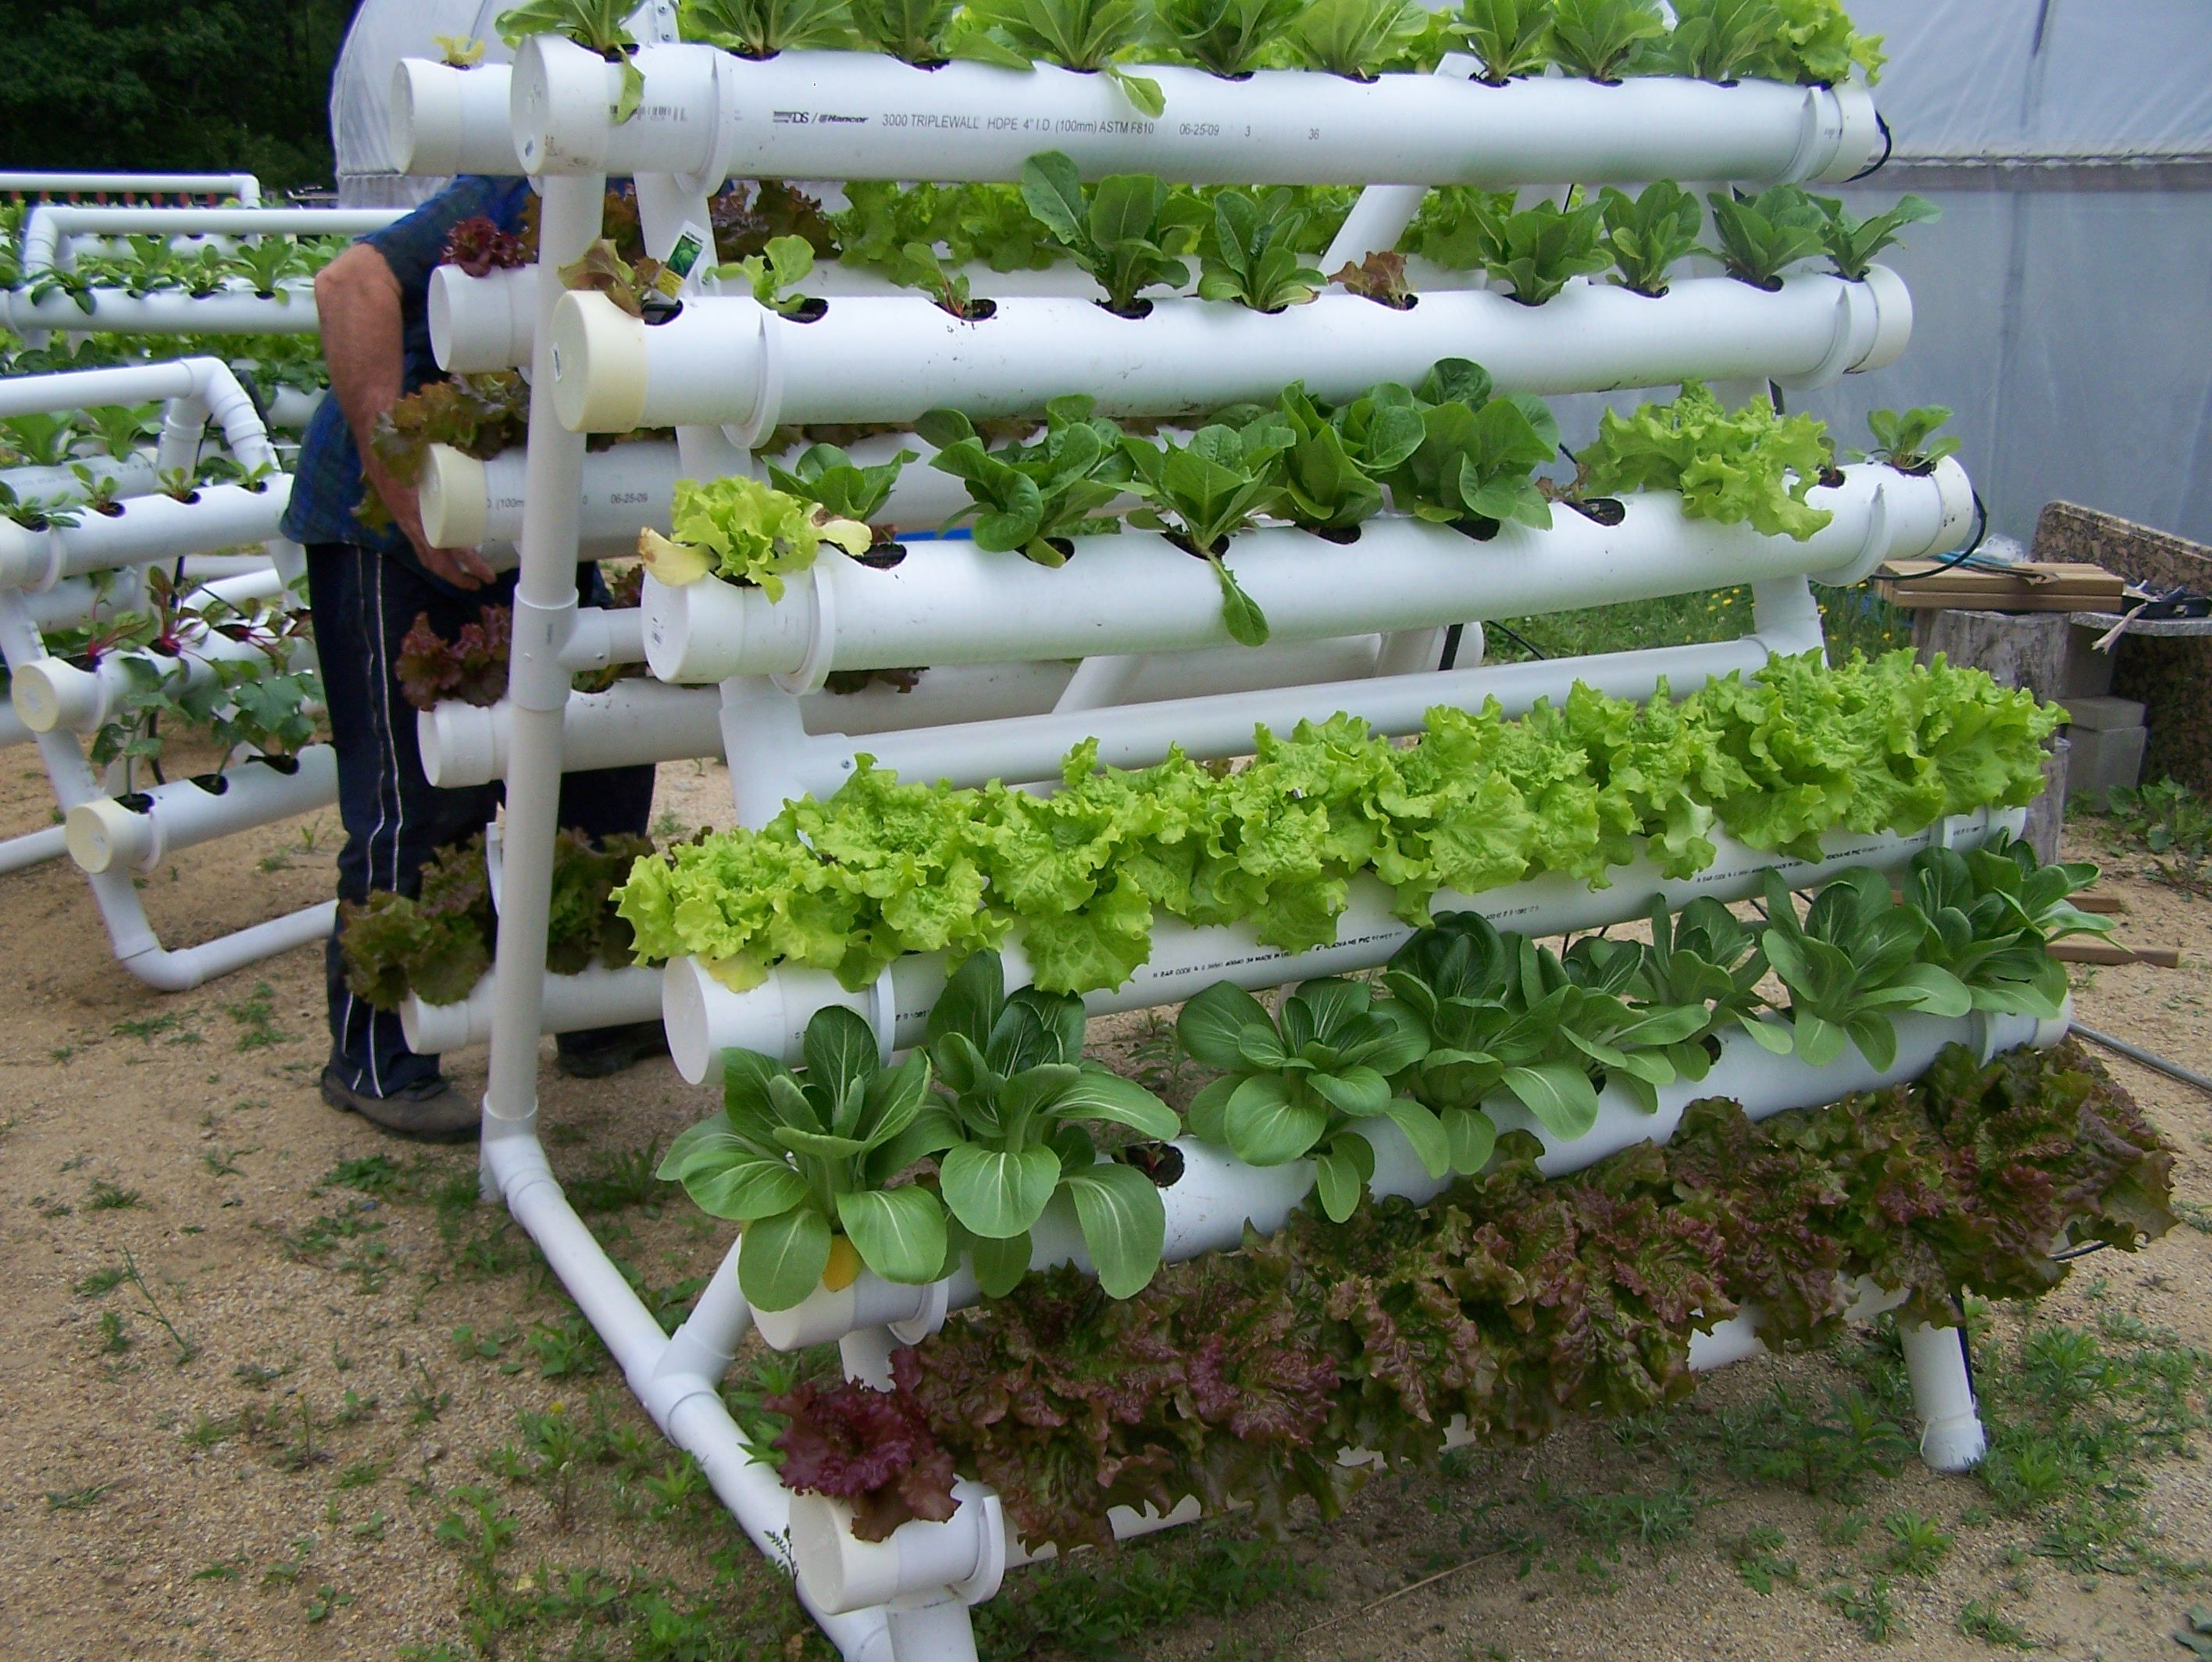 17 Best images about Hydroponics on Pinterest Gardens Vertical